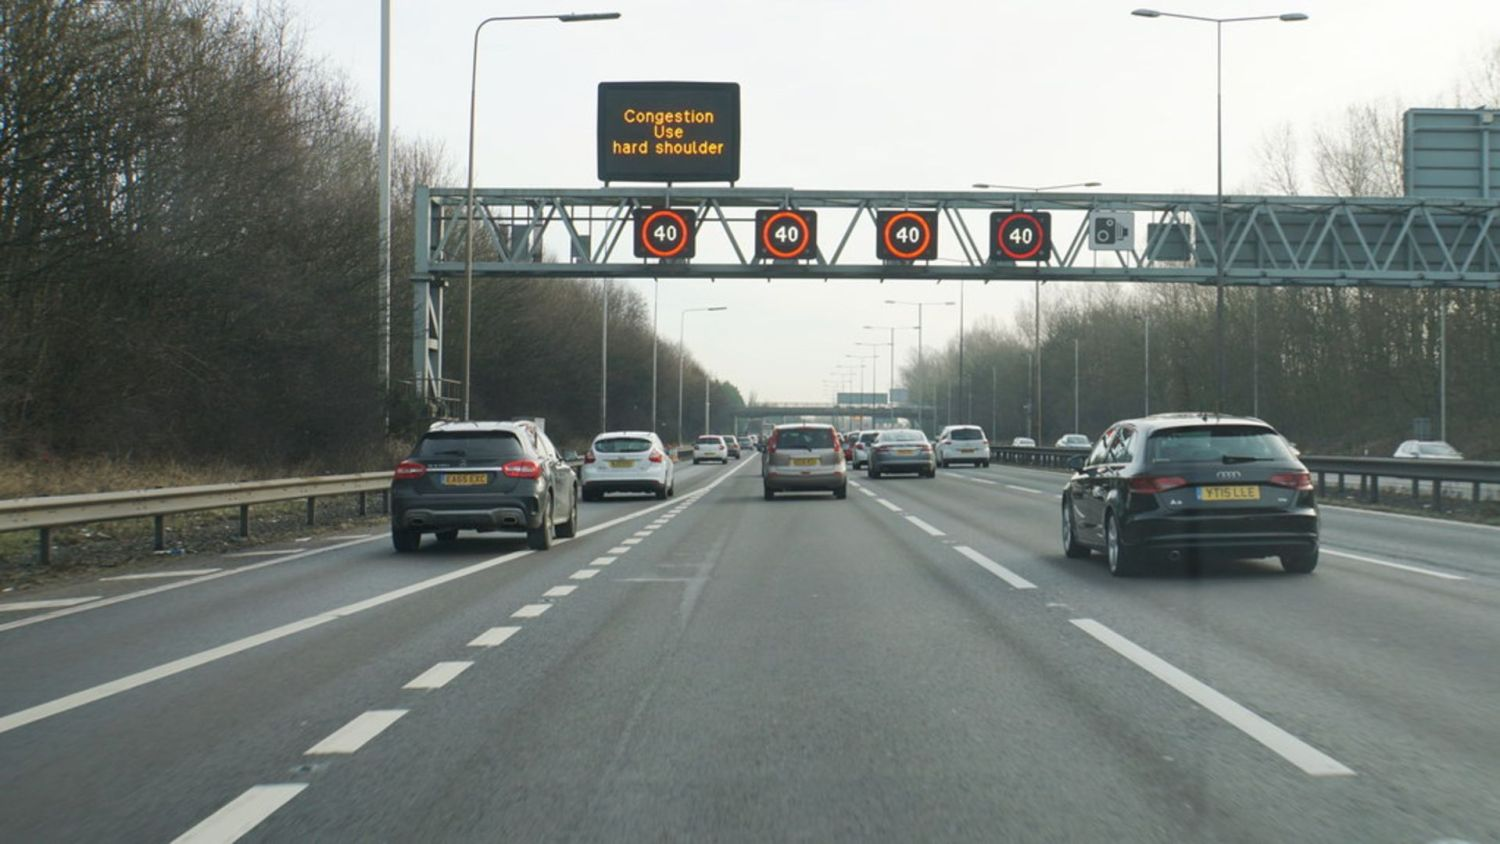 Smart motorway hard shoulder